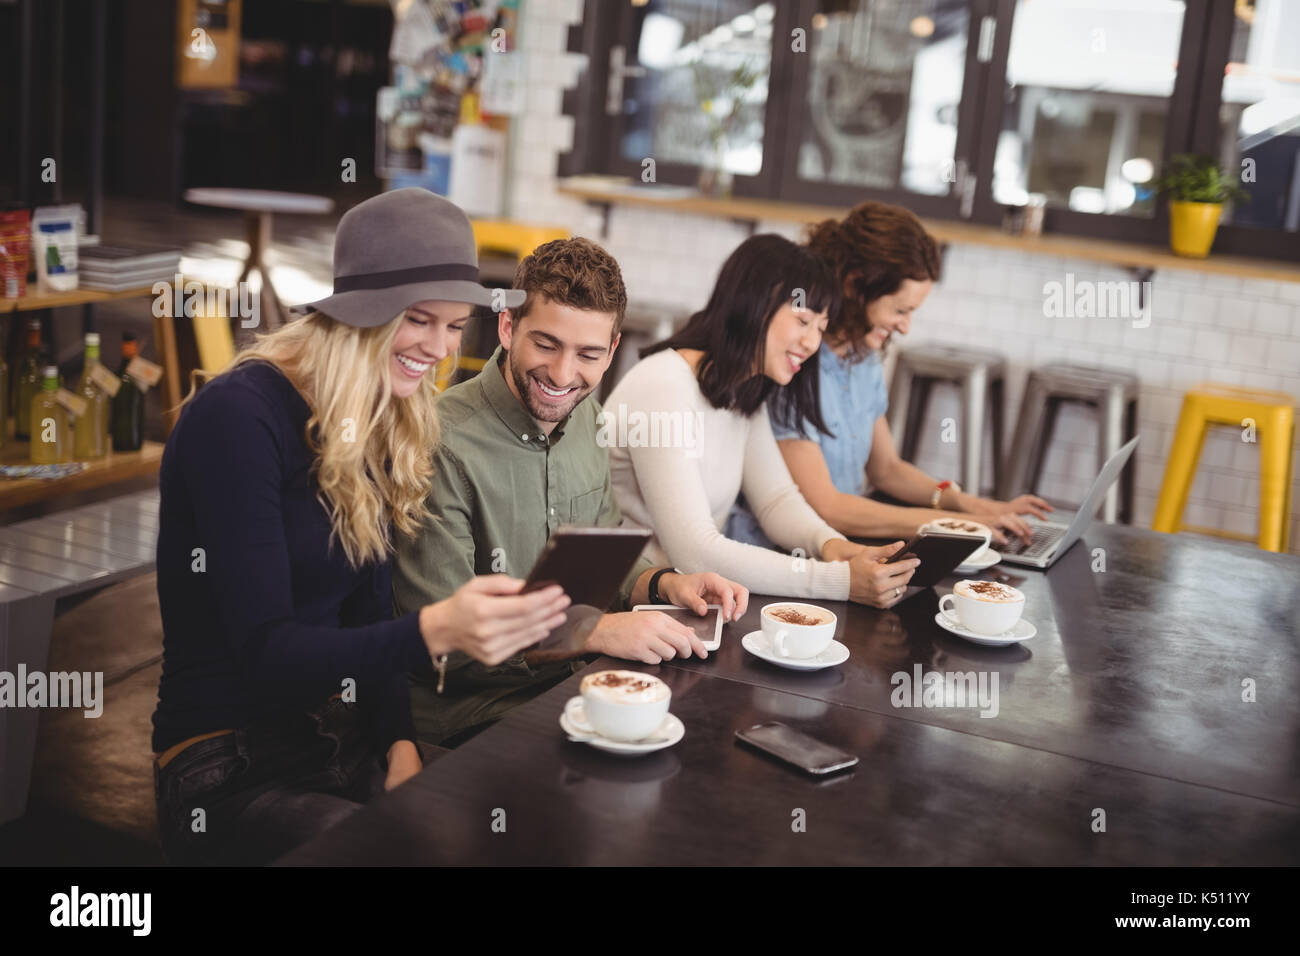 High angle view of happy friends using technologies while sitting at table in coffee shop - Stock Image